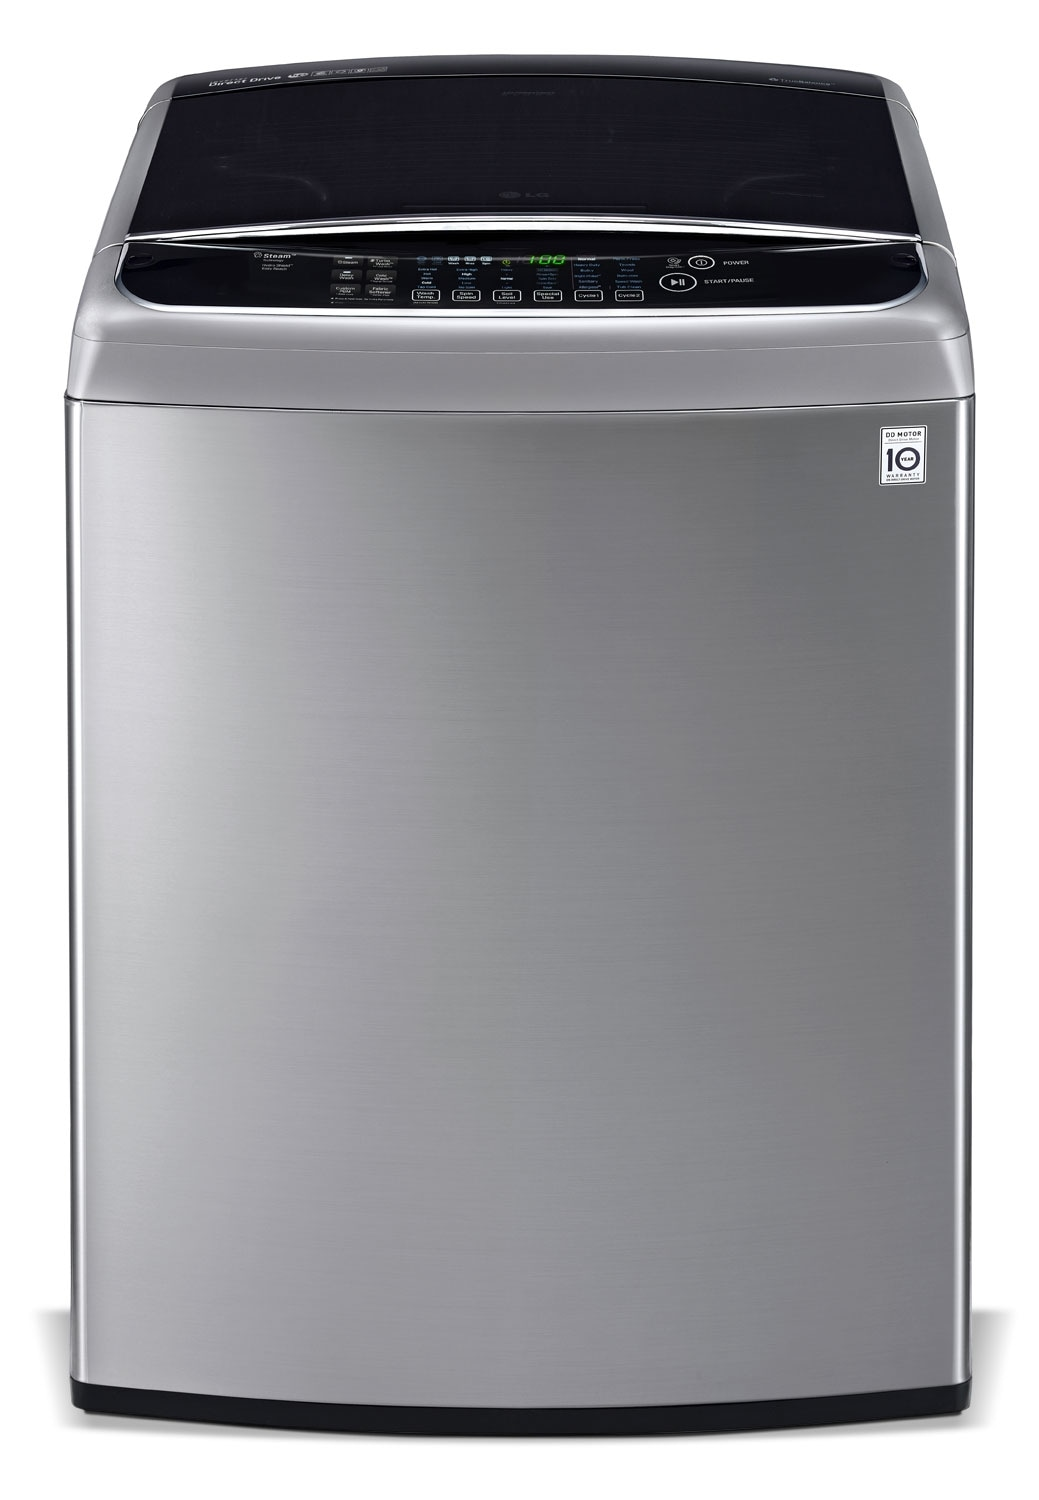 Washers and Dryers - LG Appliances Graphite Steel Top-Load Washer (5.8 Cu. Ft. IEC) - WT1801HVA